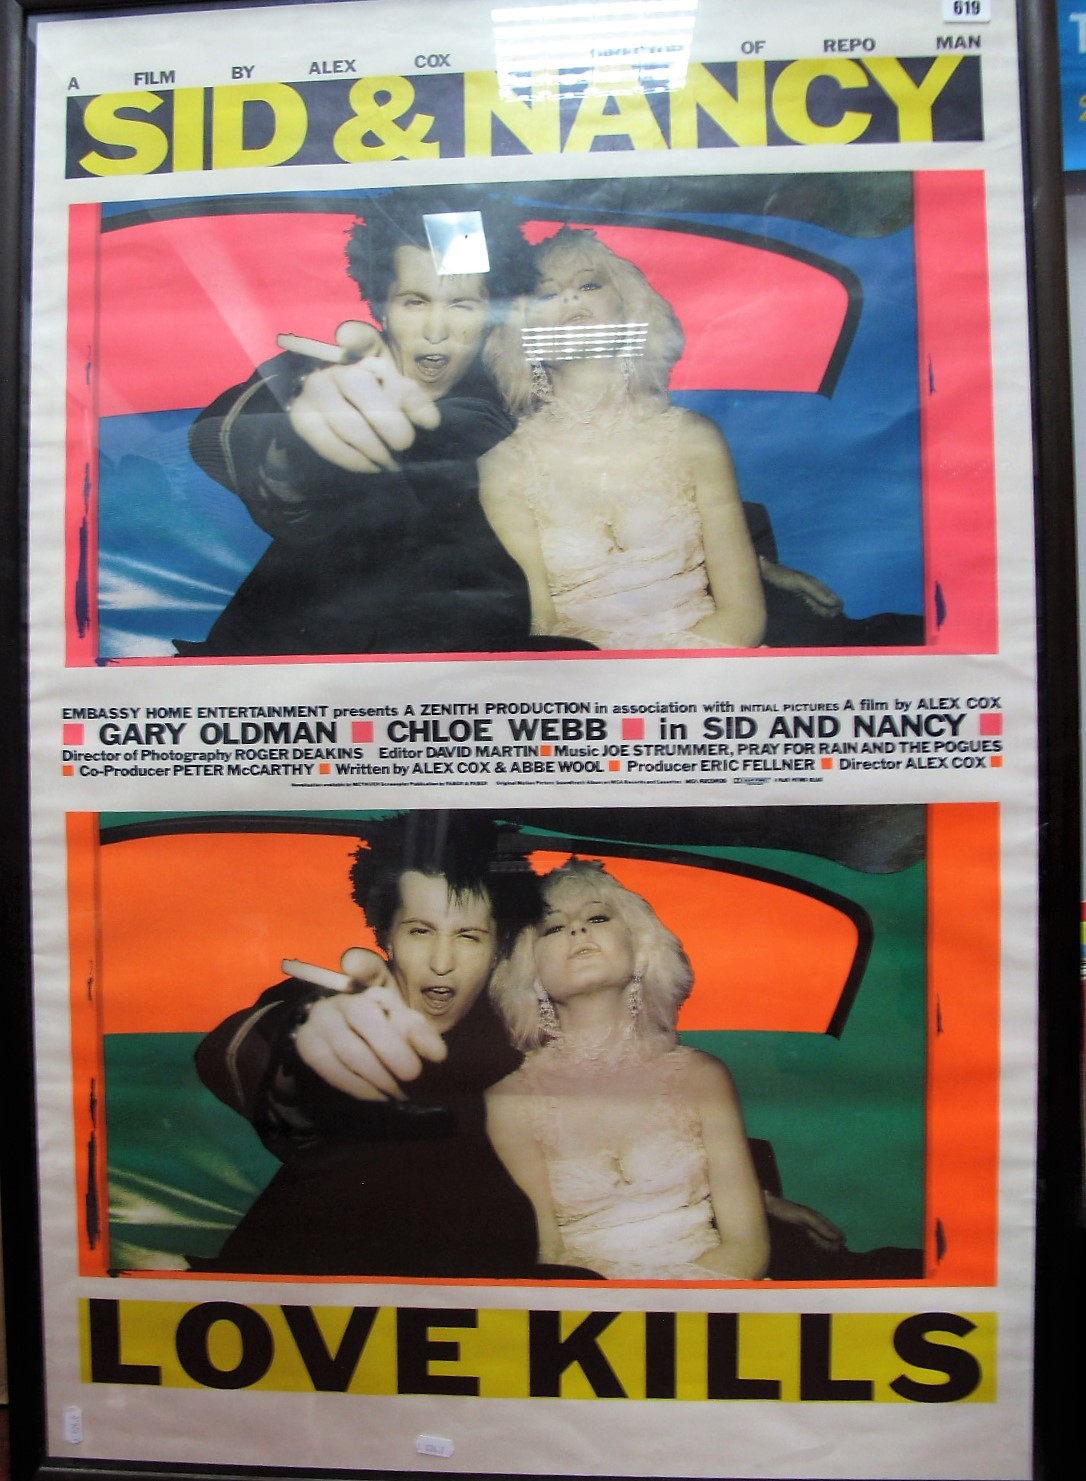 Lot 619 - Film Interest - 'Sid and Nancy - Love Kills', colour poster of the 1986 film release, 101 x 67cm,